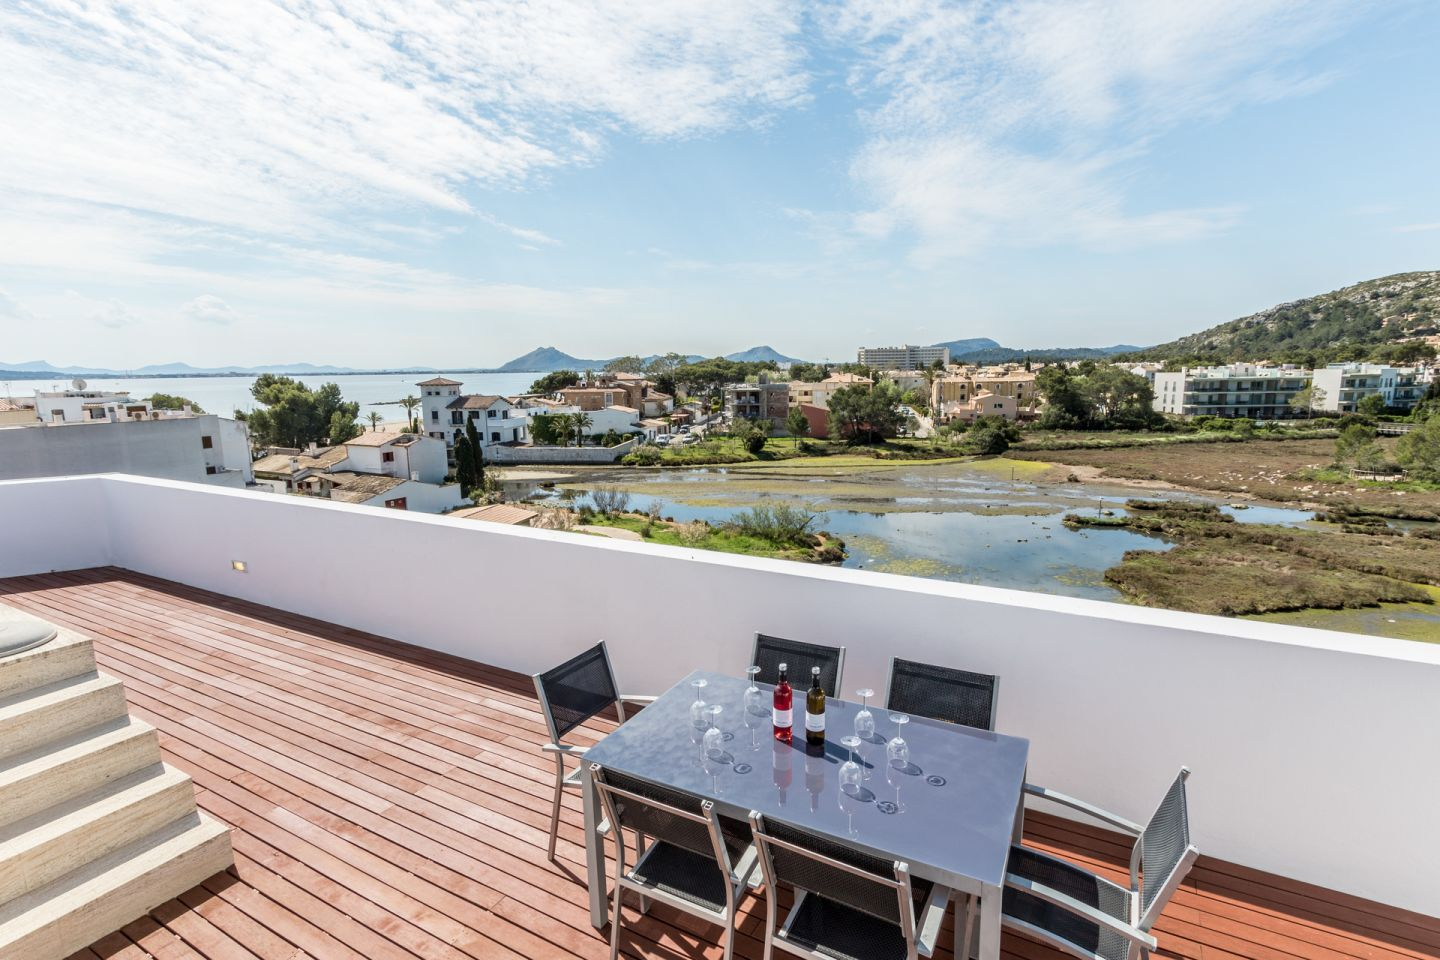 3 Bed Penthouse for sale in PUERTO POLLENSA 7